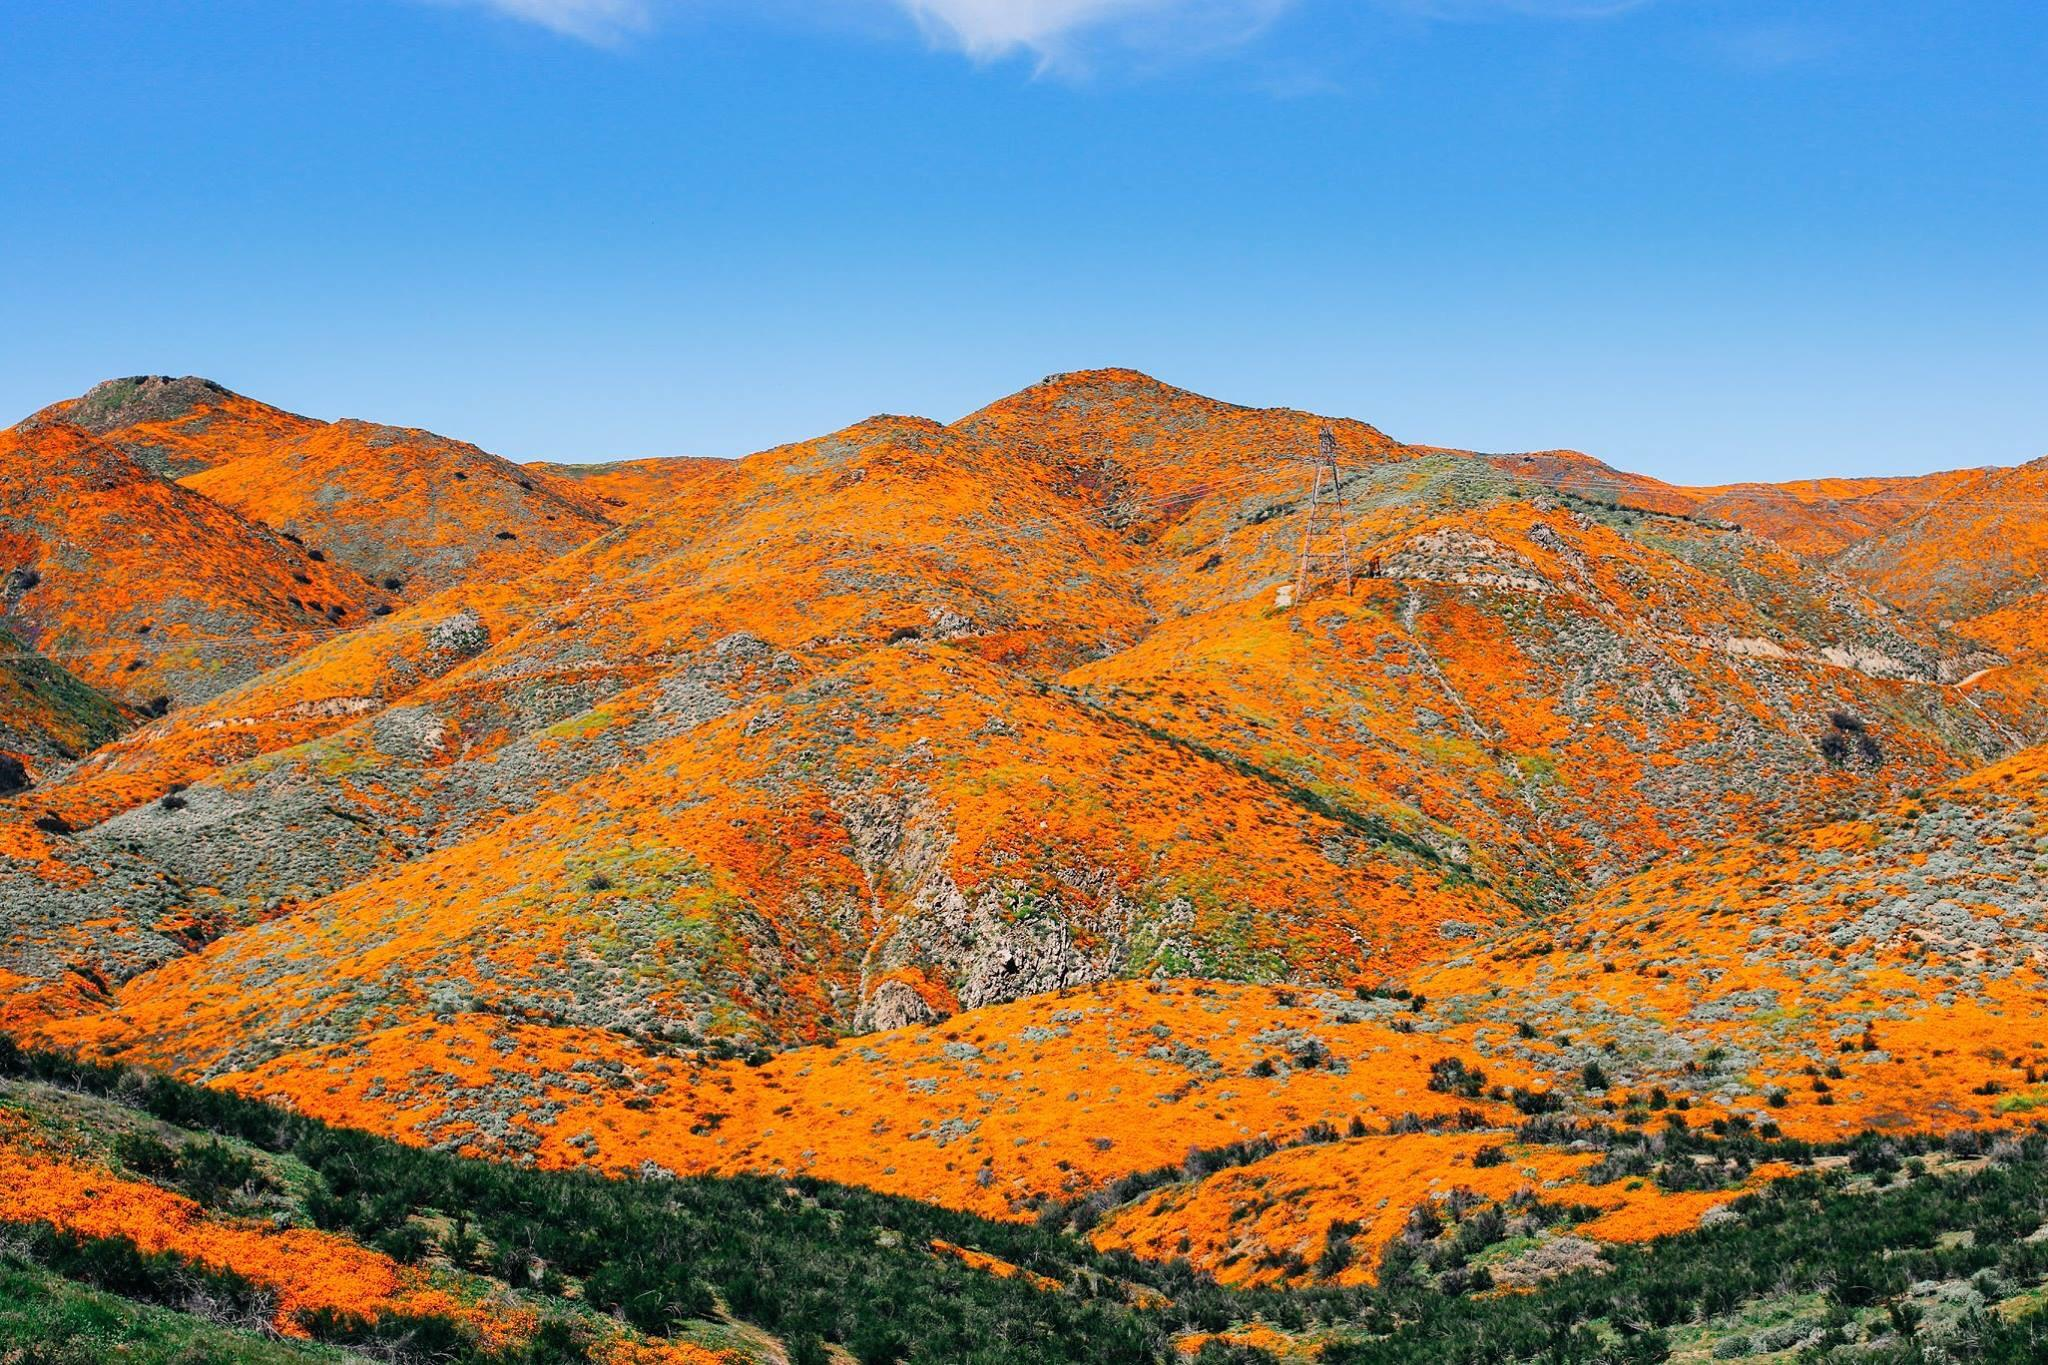 Lake Elsinore during the 2019 Super Bloom